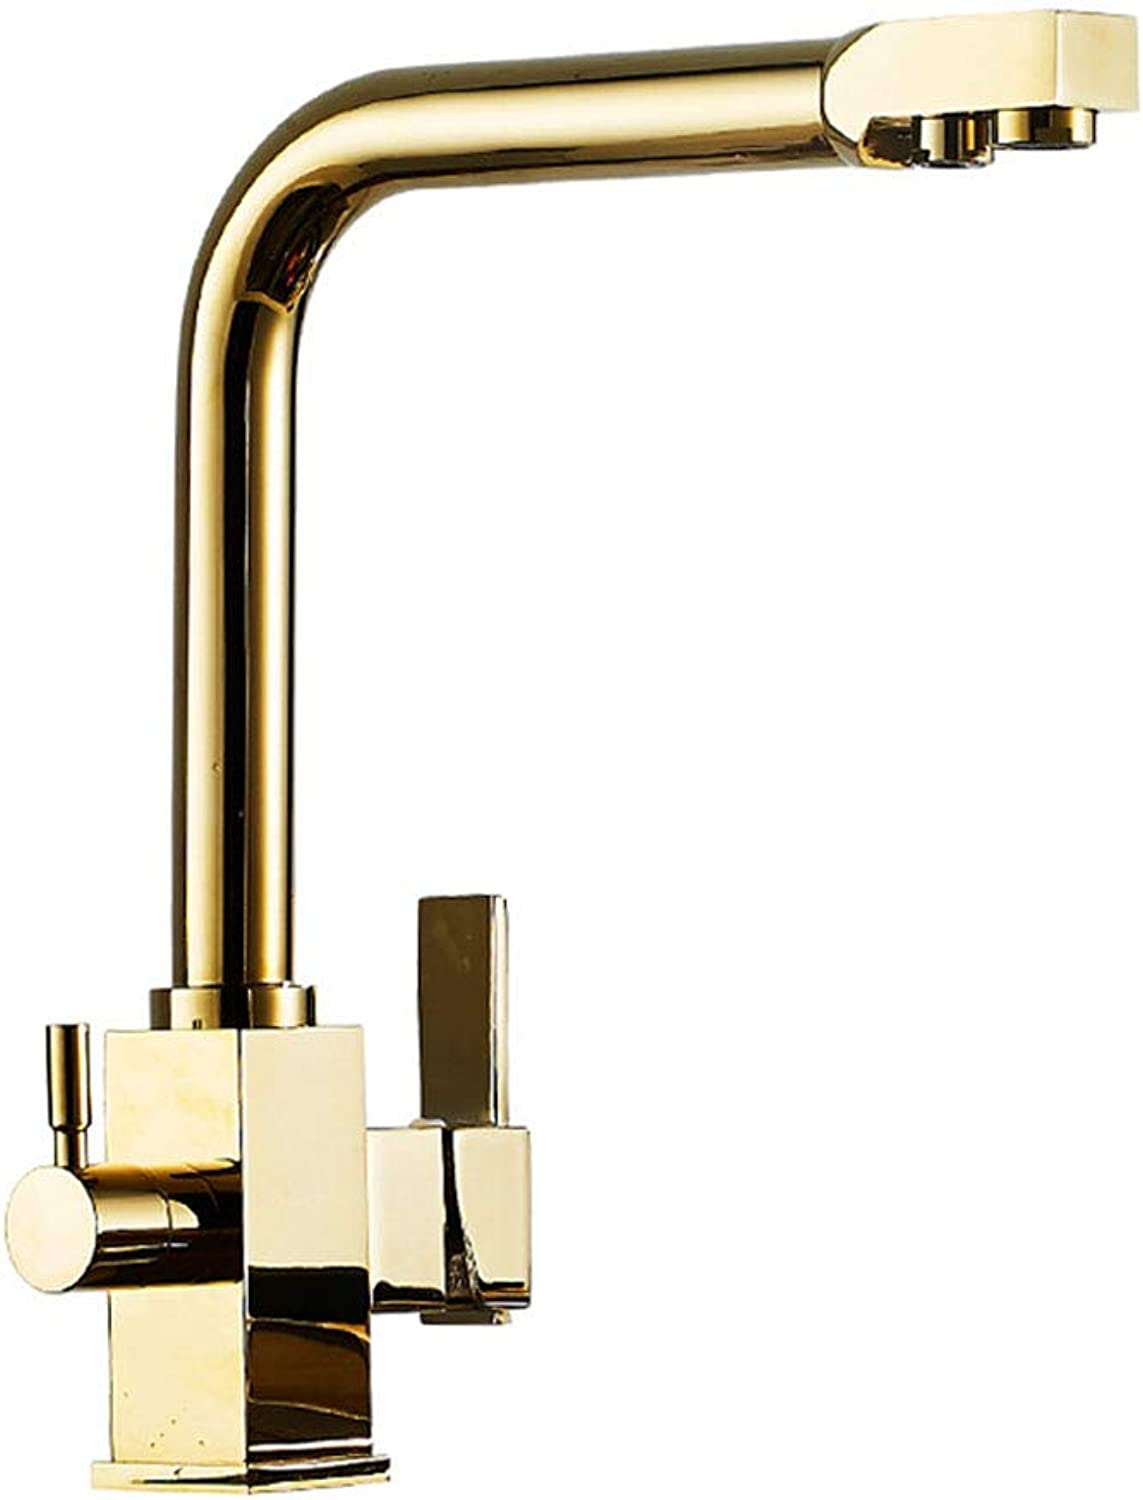 Xinsheng Contemporary 360° Swivel Bathroom Tap Solid brass hot and cold water faucet Single handle Basin Mixer faucet